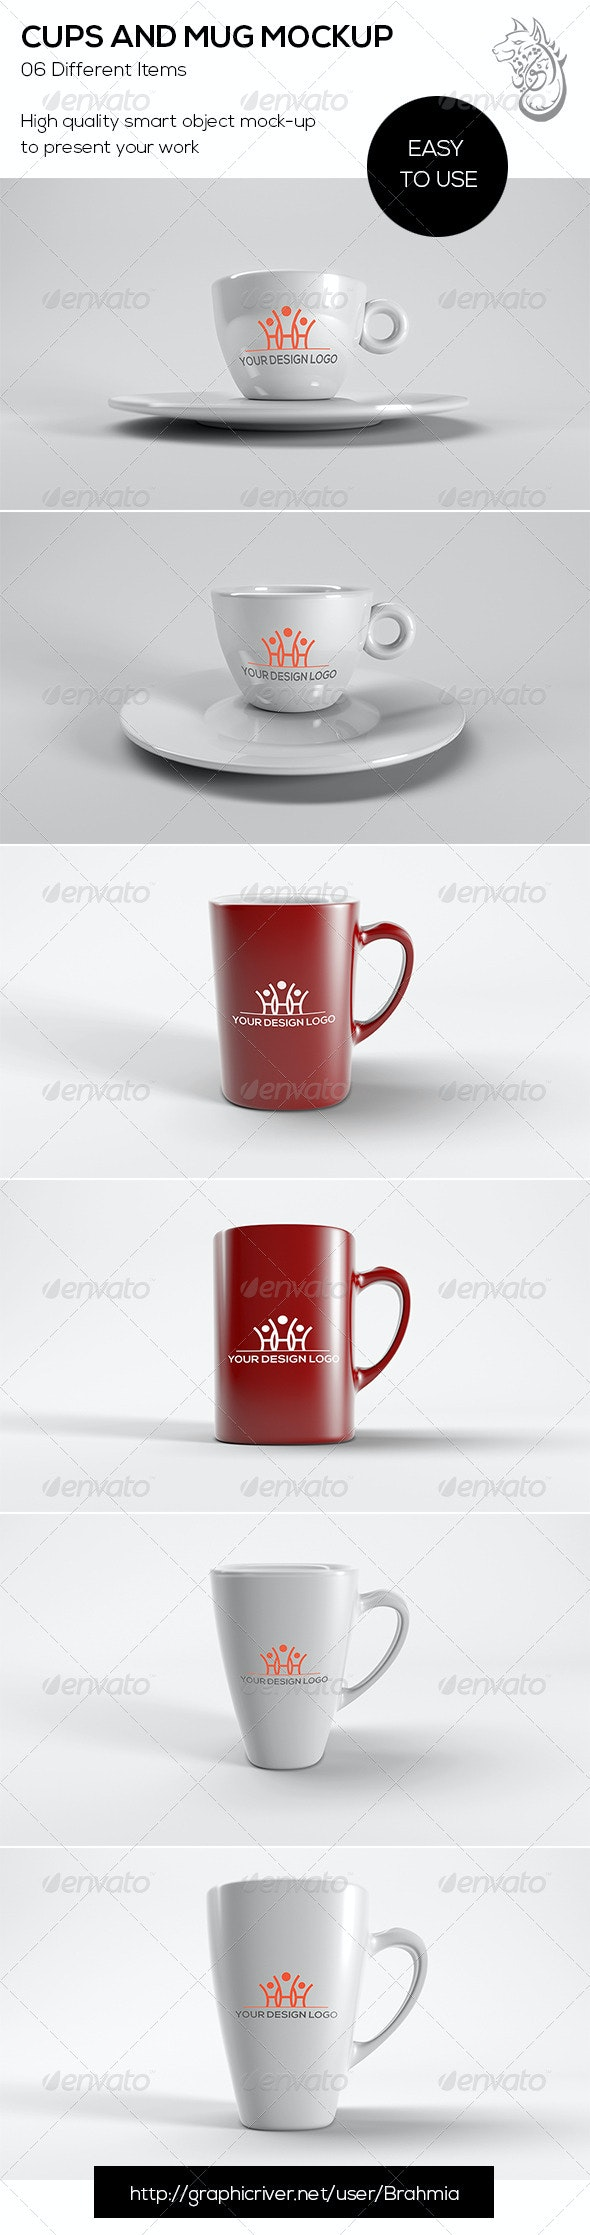 Cups And Mug Mockup - Food and Drink Packaging